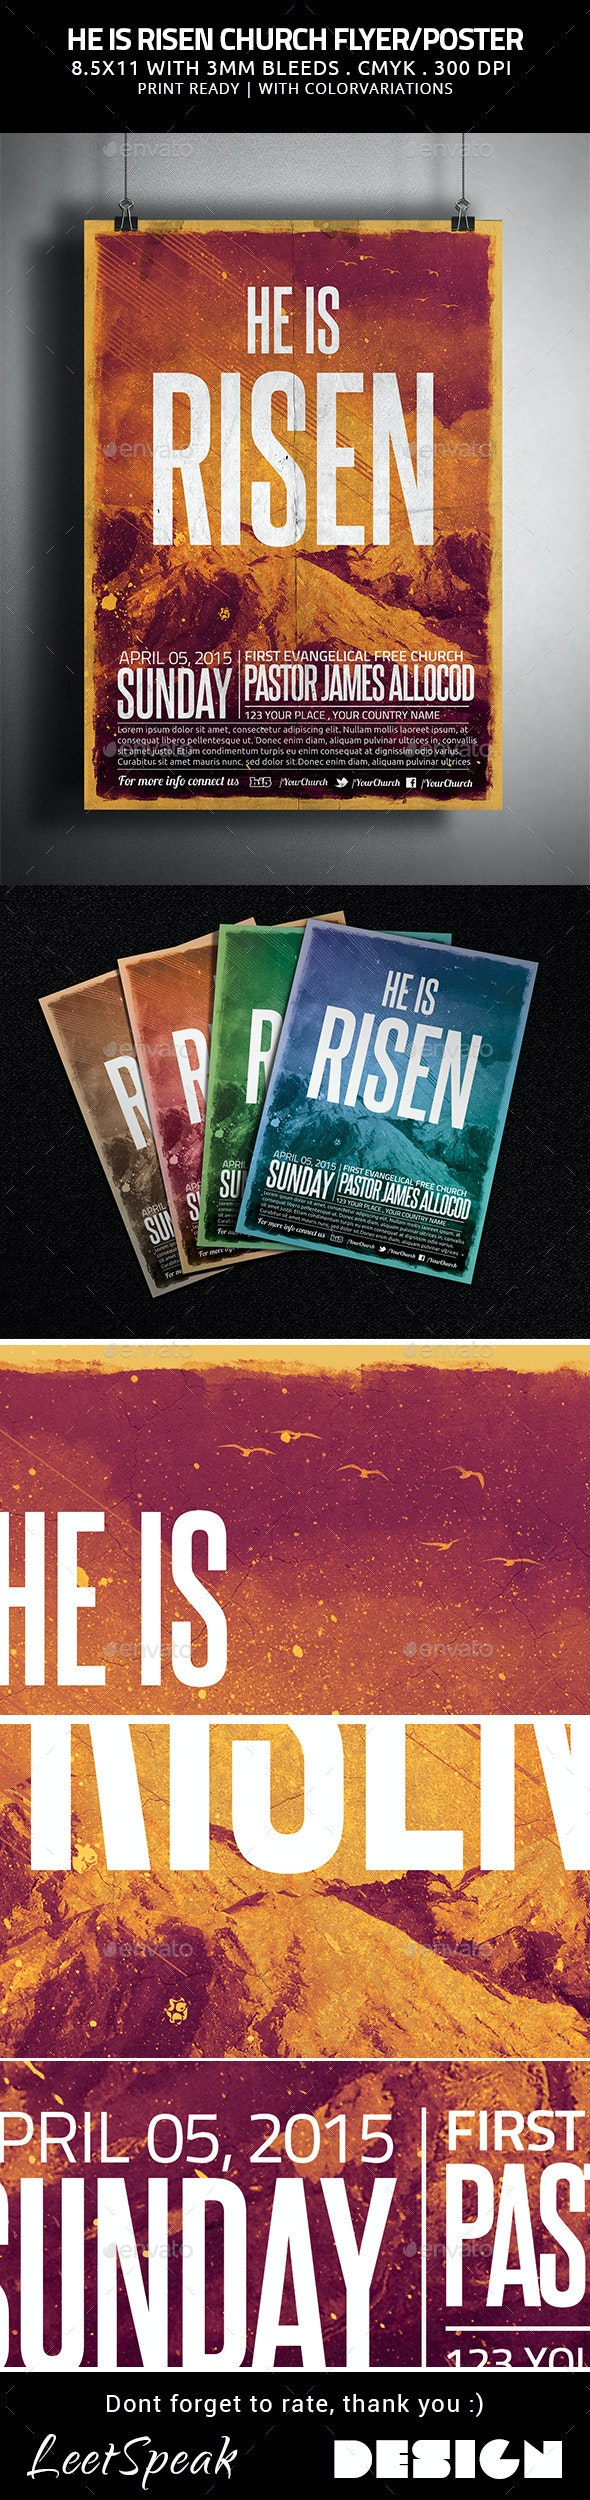 He is Risen Church Flyer/Poster - Church Flyers